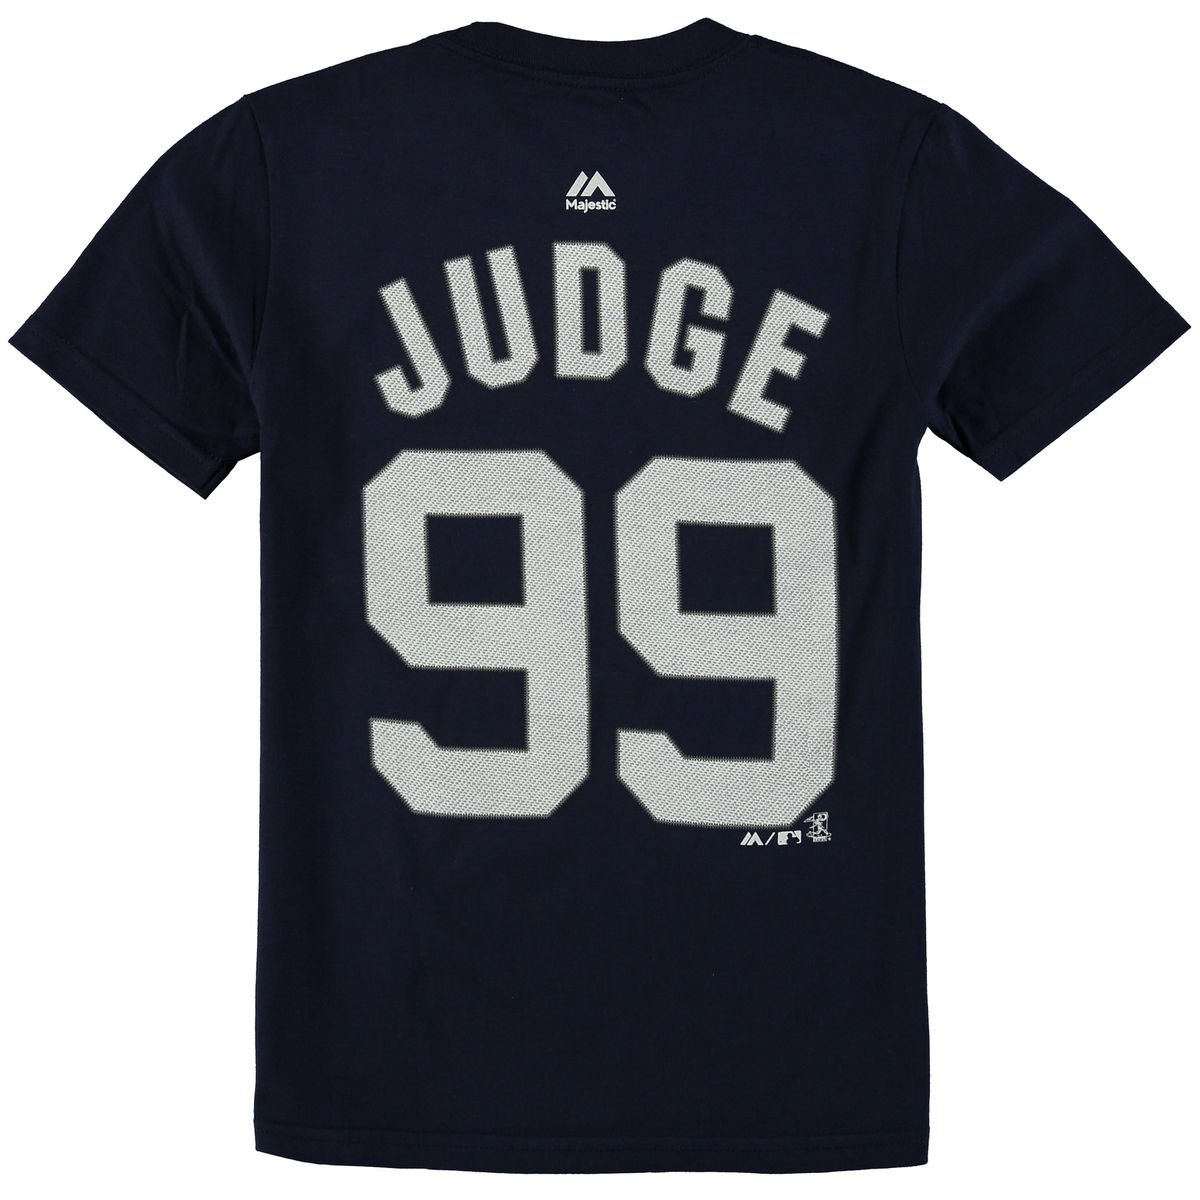 new products 46f27 af8bf Majestic Aaron Judge New York Yankees #99 MLB Youth Player T-shirt